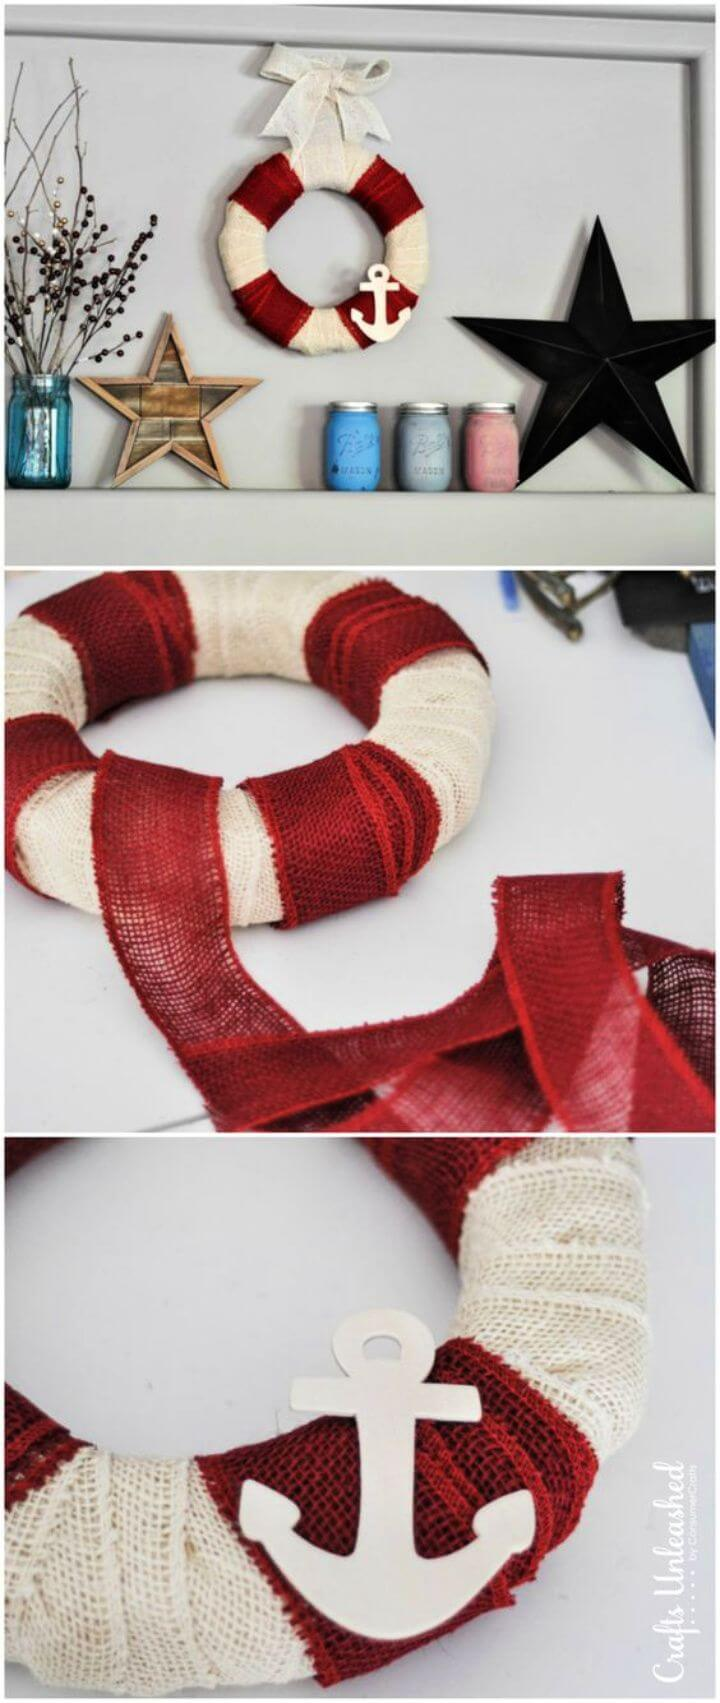 DIY Nautical DIY Burlap Wreath in 5 Minutes